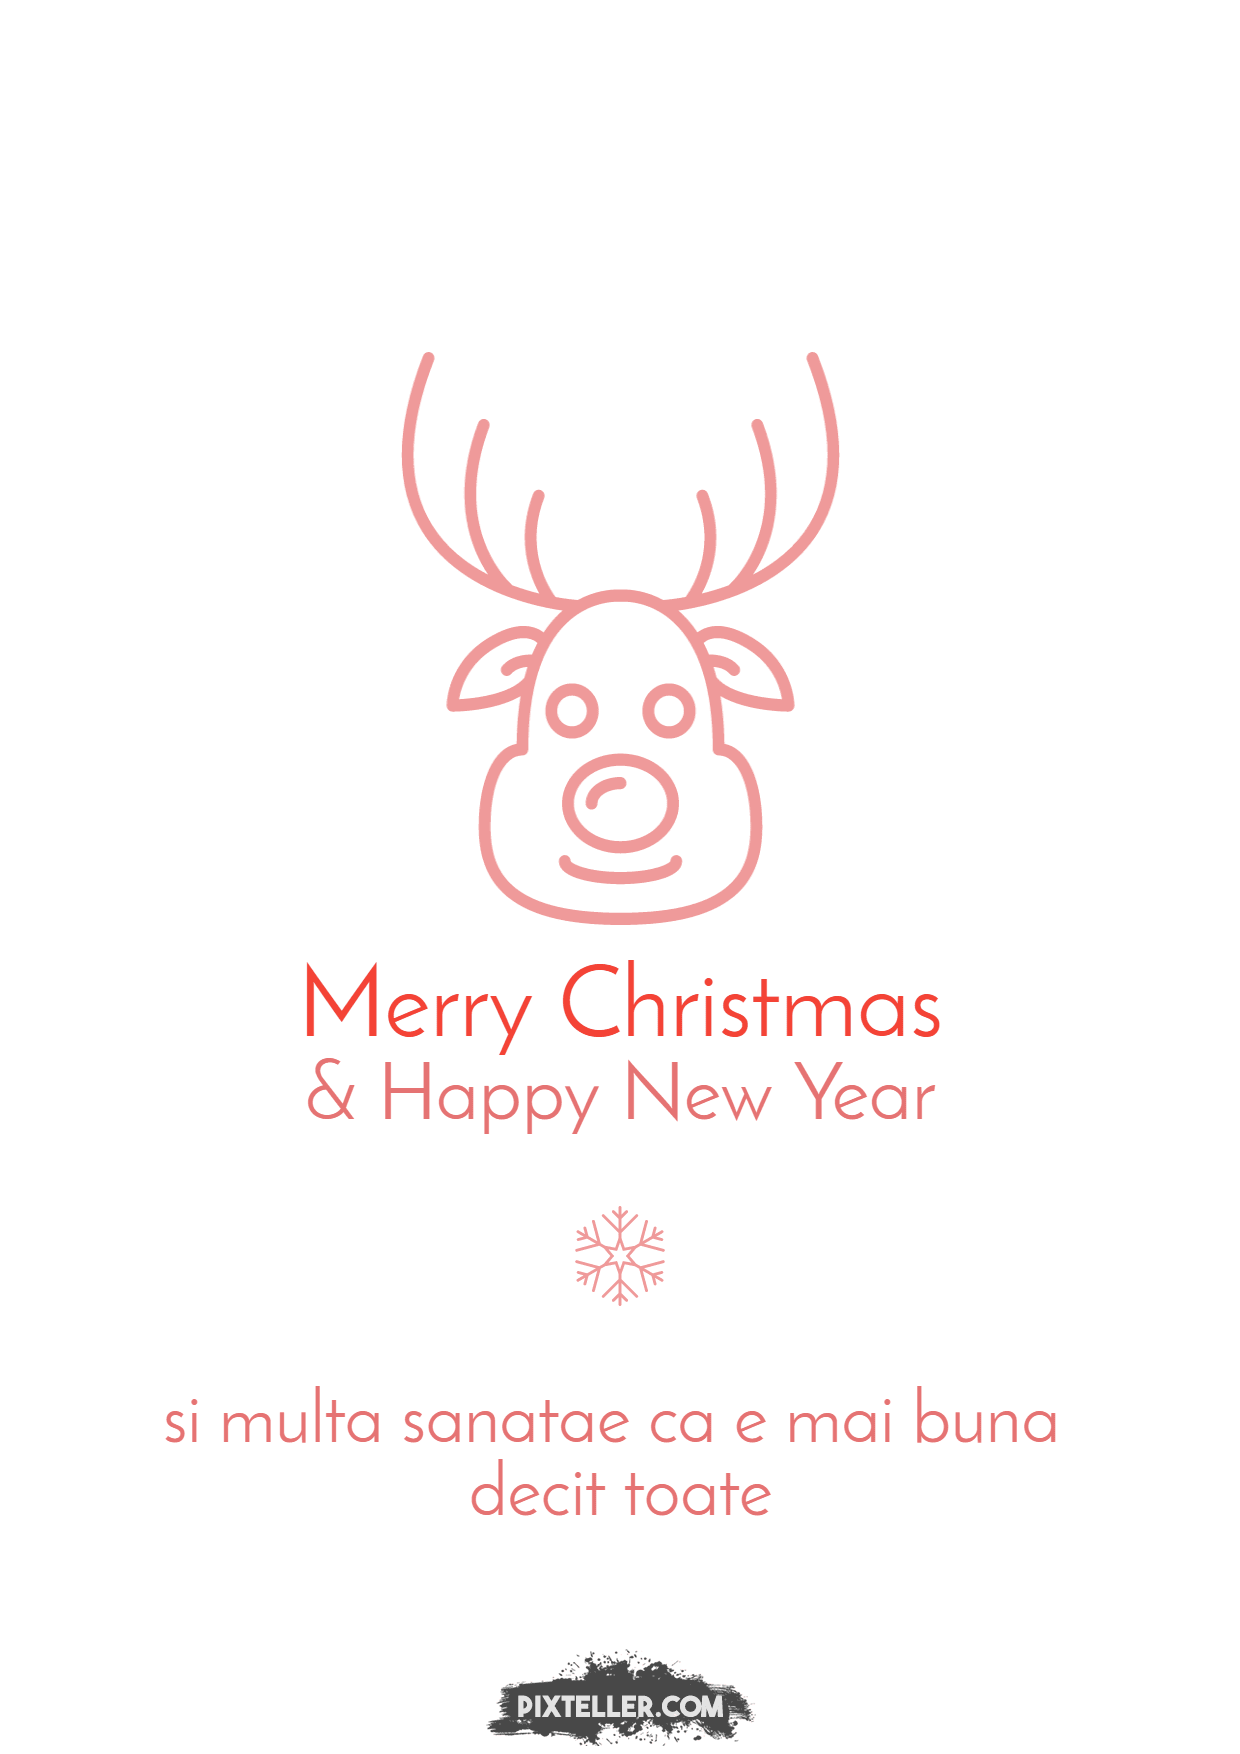 Font,                Brand,                Line,                Illustration,                Logo,                Christmas,                Anniversary,                Holiday,                White,                 Free Image